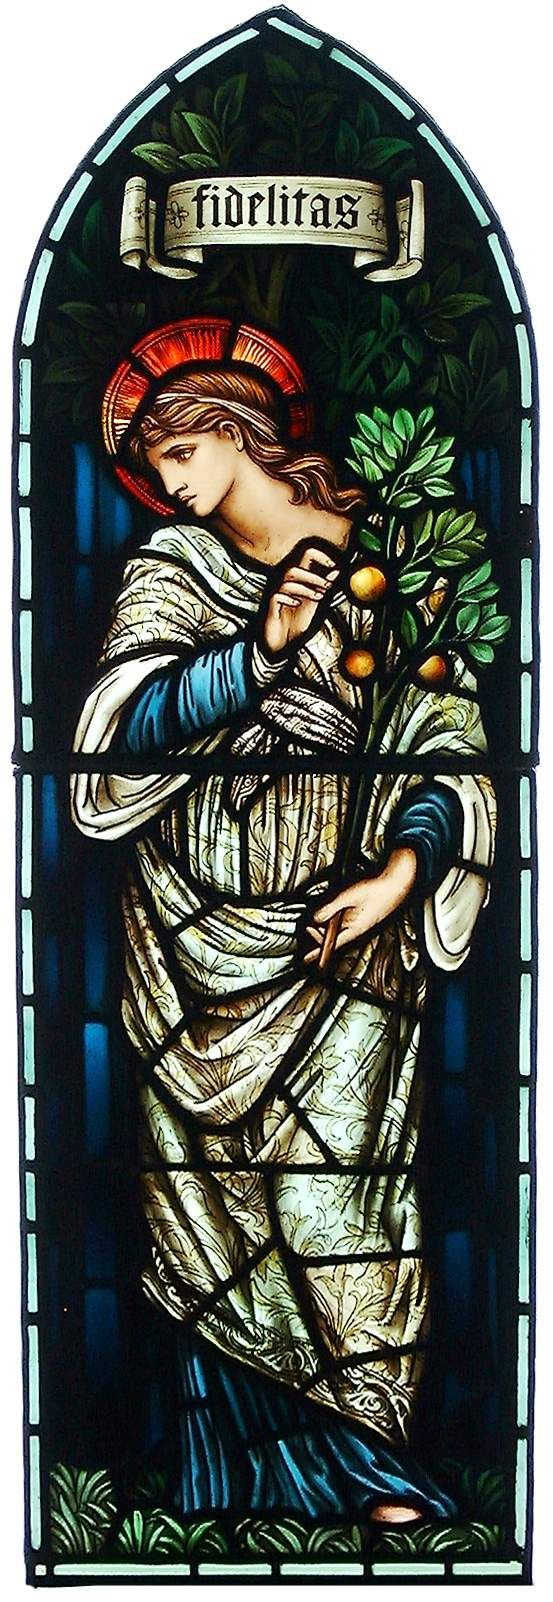 Two-panel light of Fidelitas designed by Edward Burne-Jones and made by Morris and Company 1910-1912. Fidelitas, face in profile and in richly patterned robe, holding leafy branch with fruits. Foliage and inscribed scroll above.